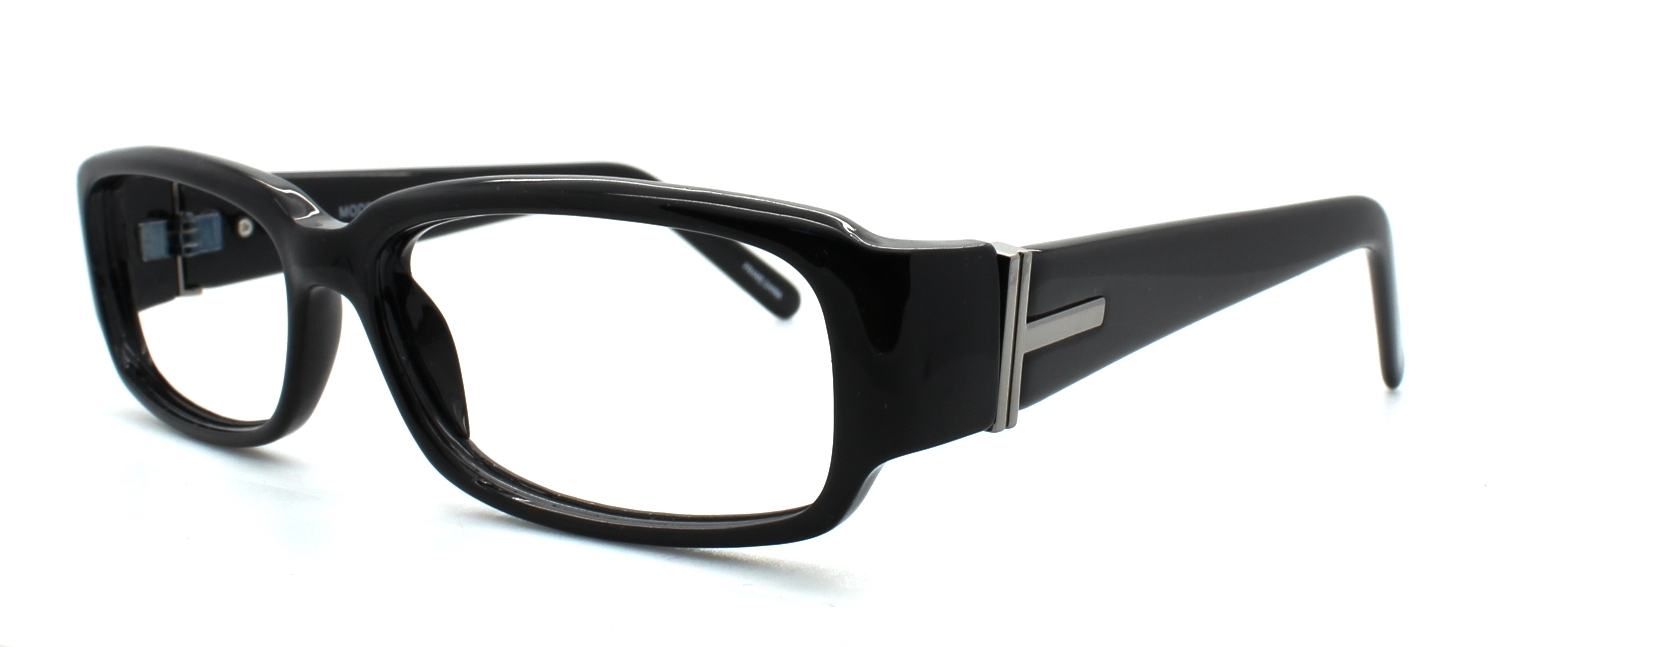 da6982b49fa Signature Collection -- Biz glasses only  19.00. Add lenses for  14.95